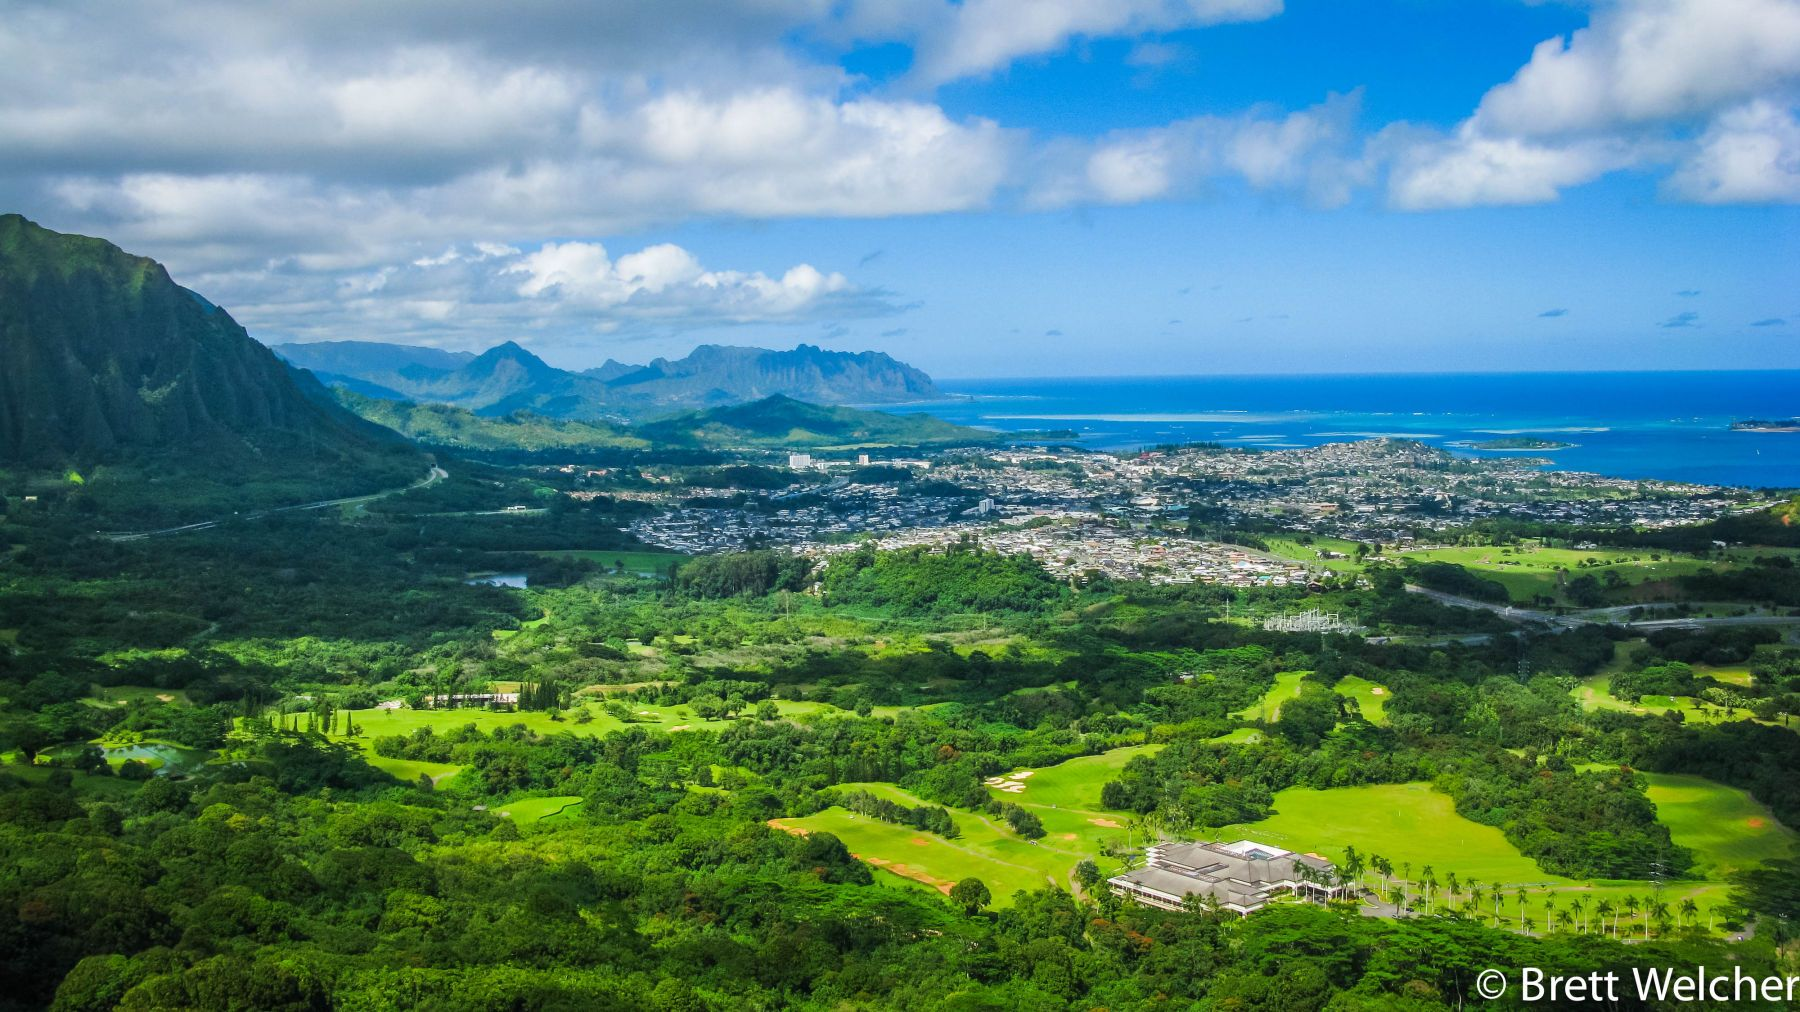 Nuʻuanu Pali Lookout - Honolulu, Hawaii